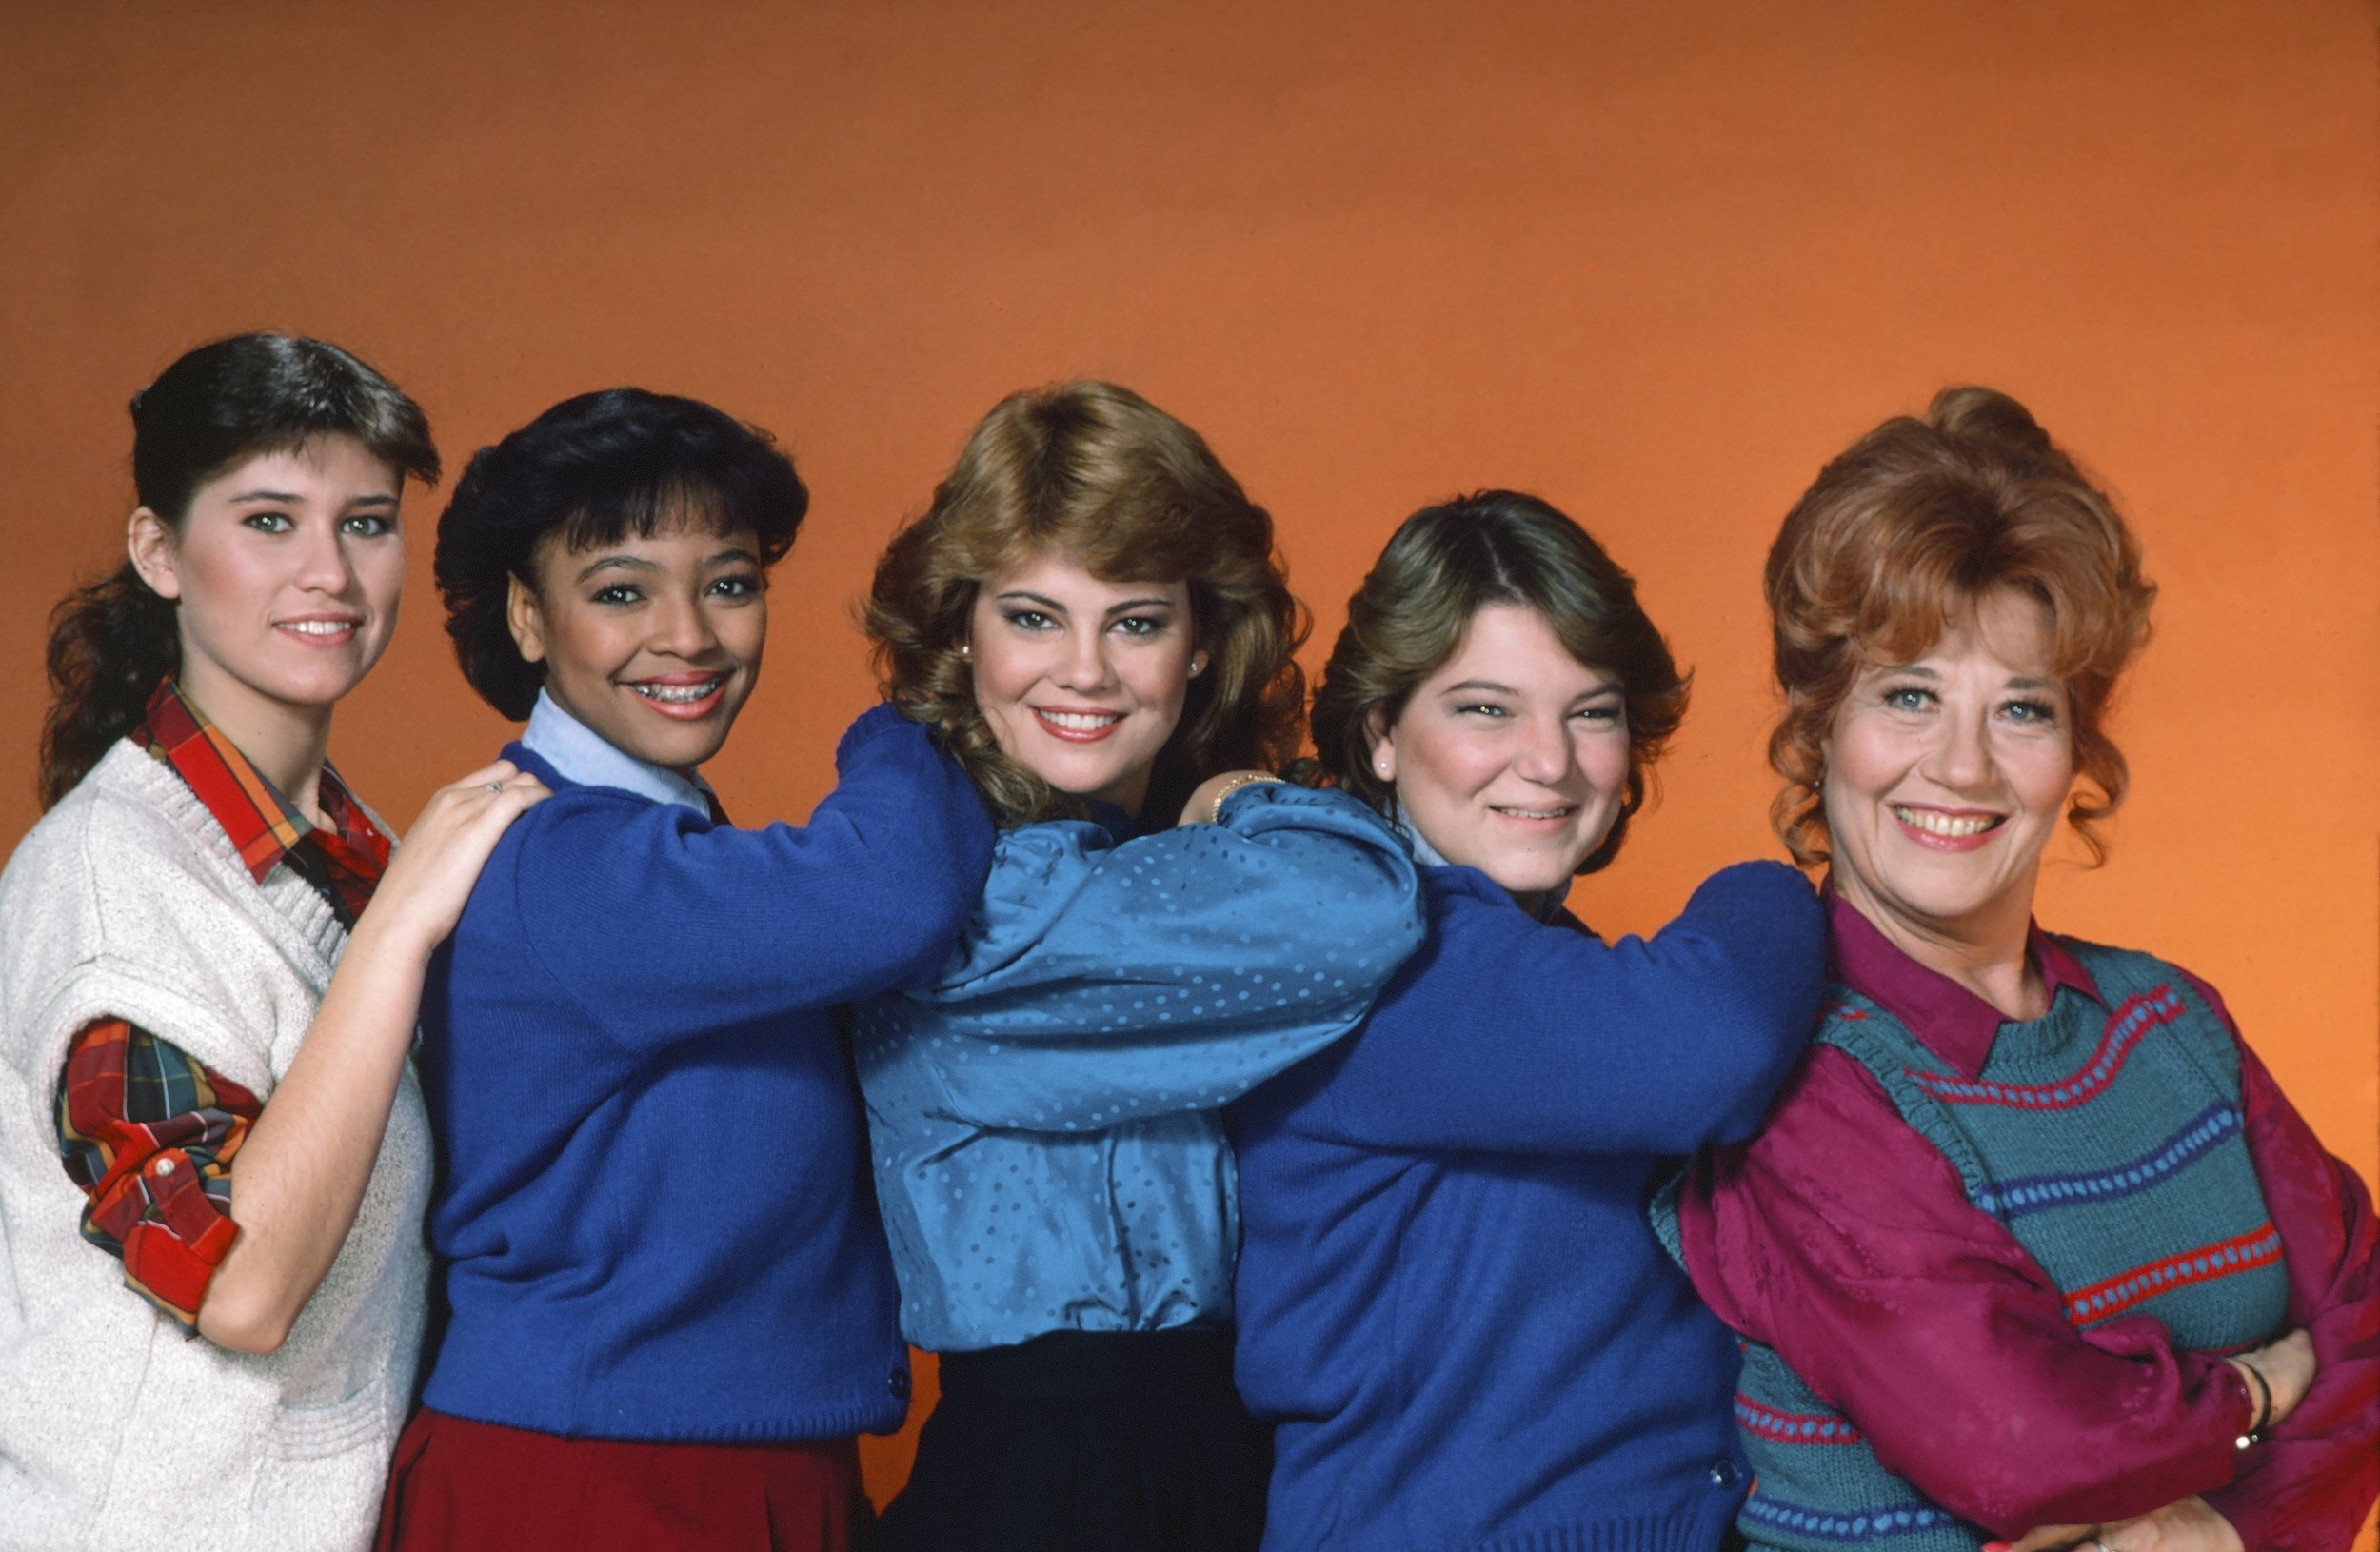 facts of life stars reuniting in new hallmark movie